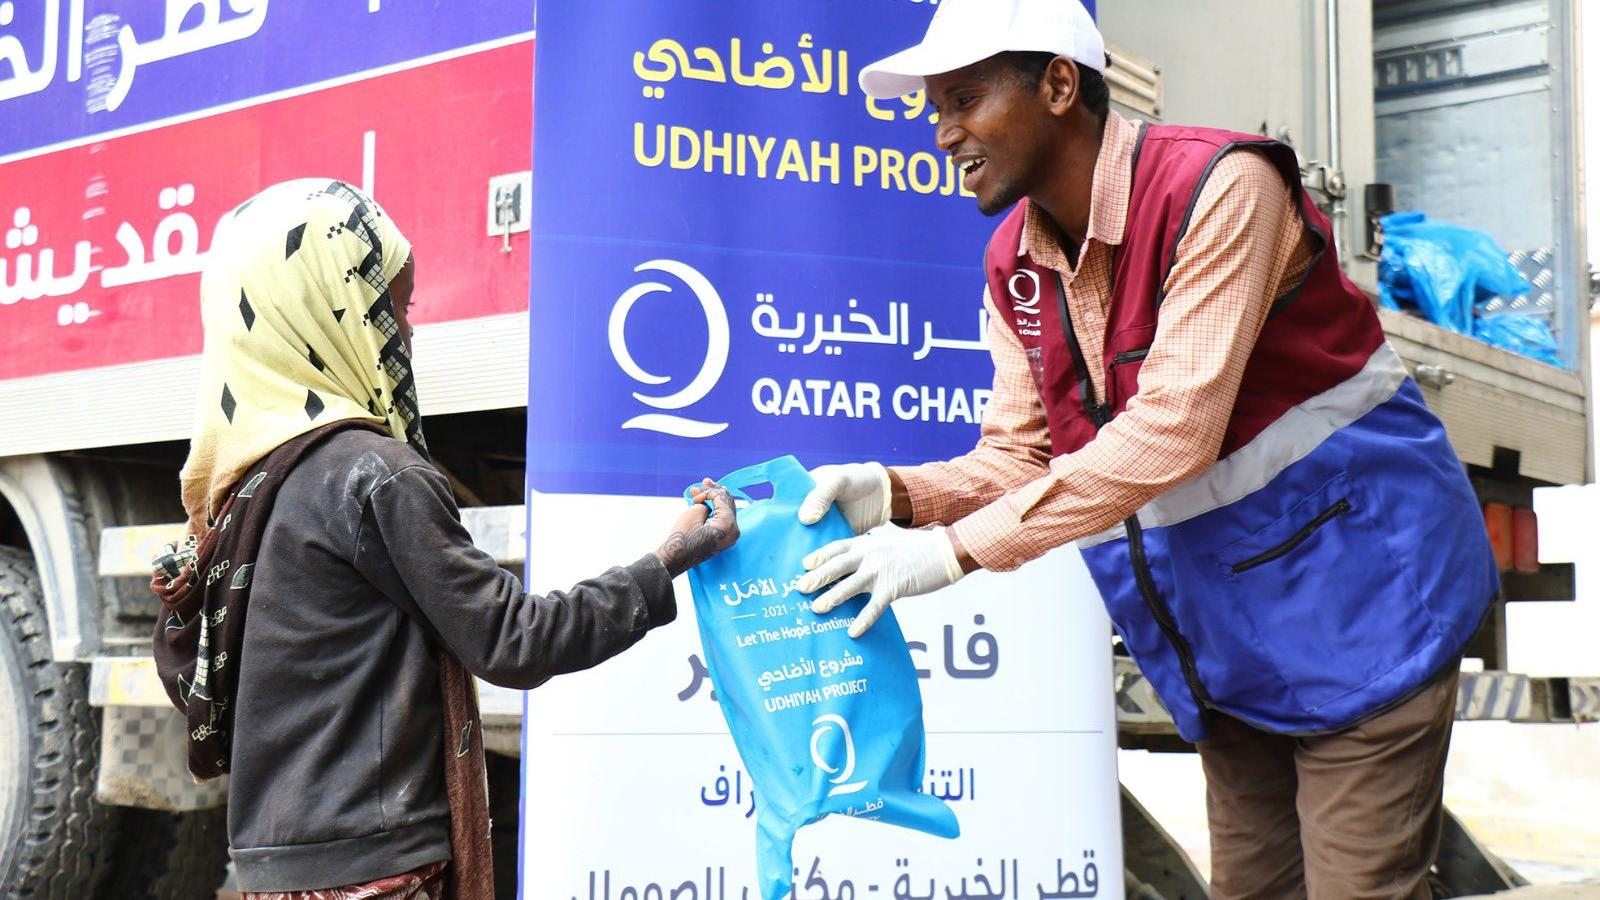 Over 930,000 benefit from Qatar Charity's Udhiya